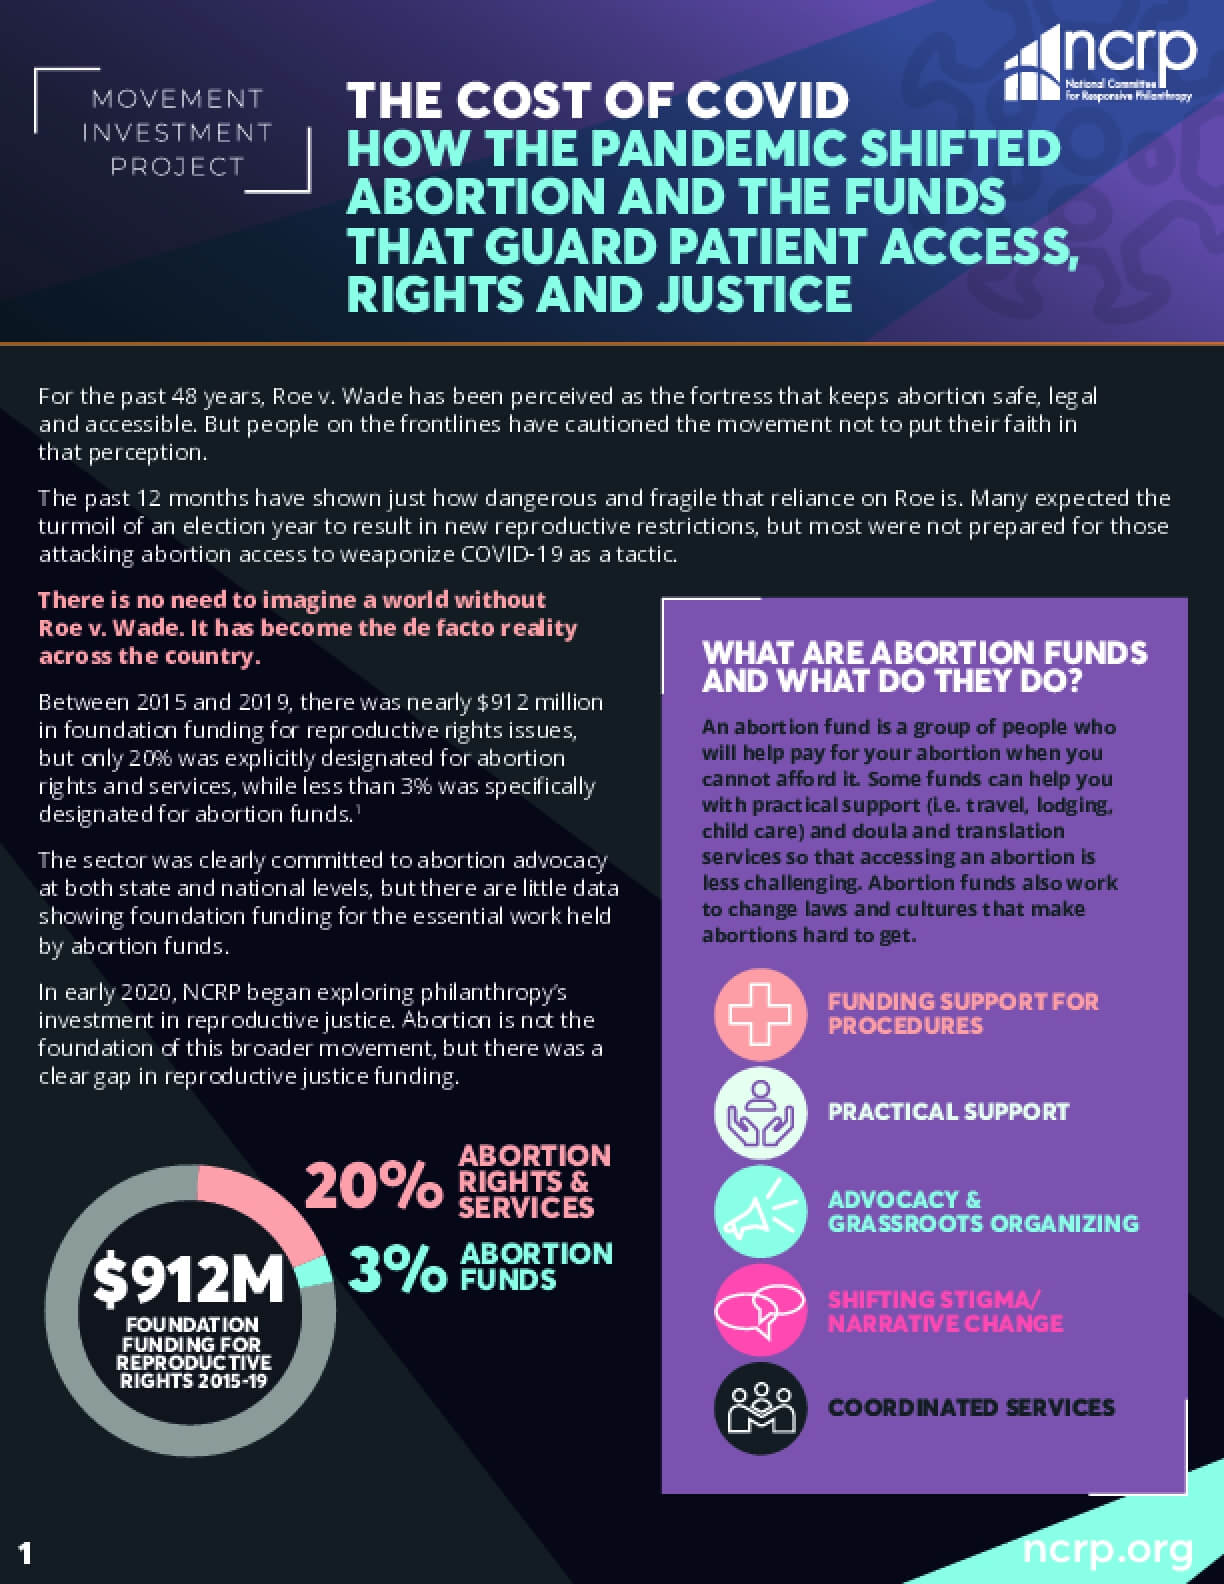 The Cost of Covid: How the Pandemic Shifted Abortion and the Funds that Guard Patient Access, Rights and Justice